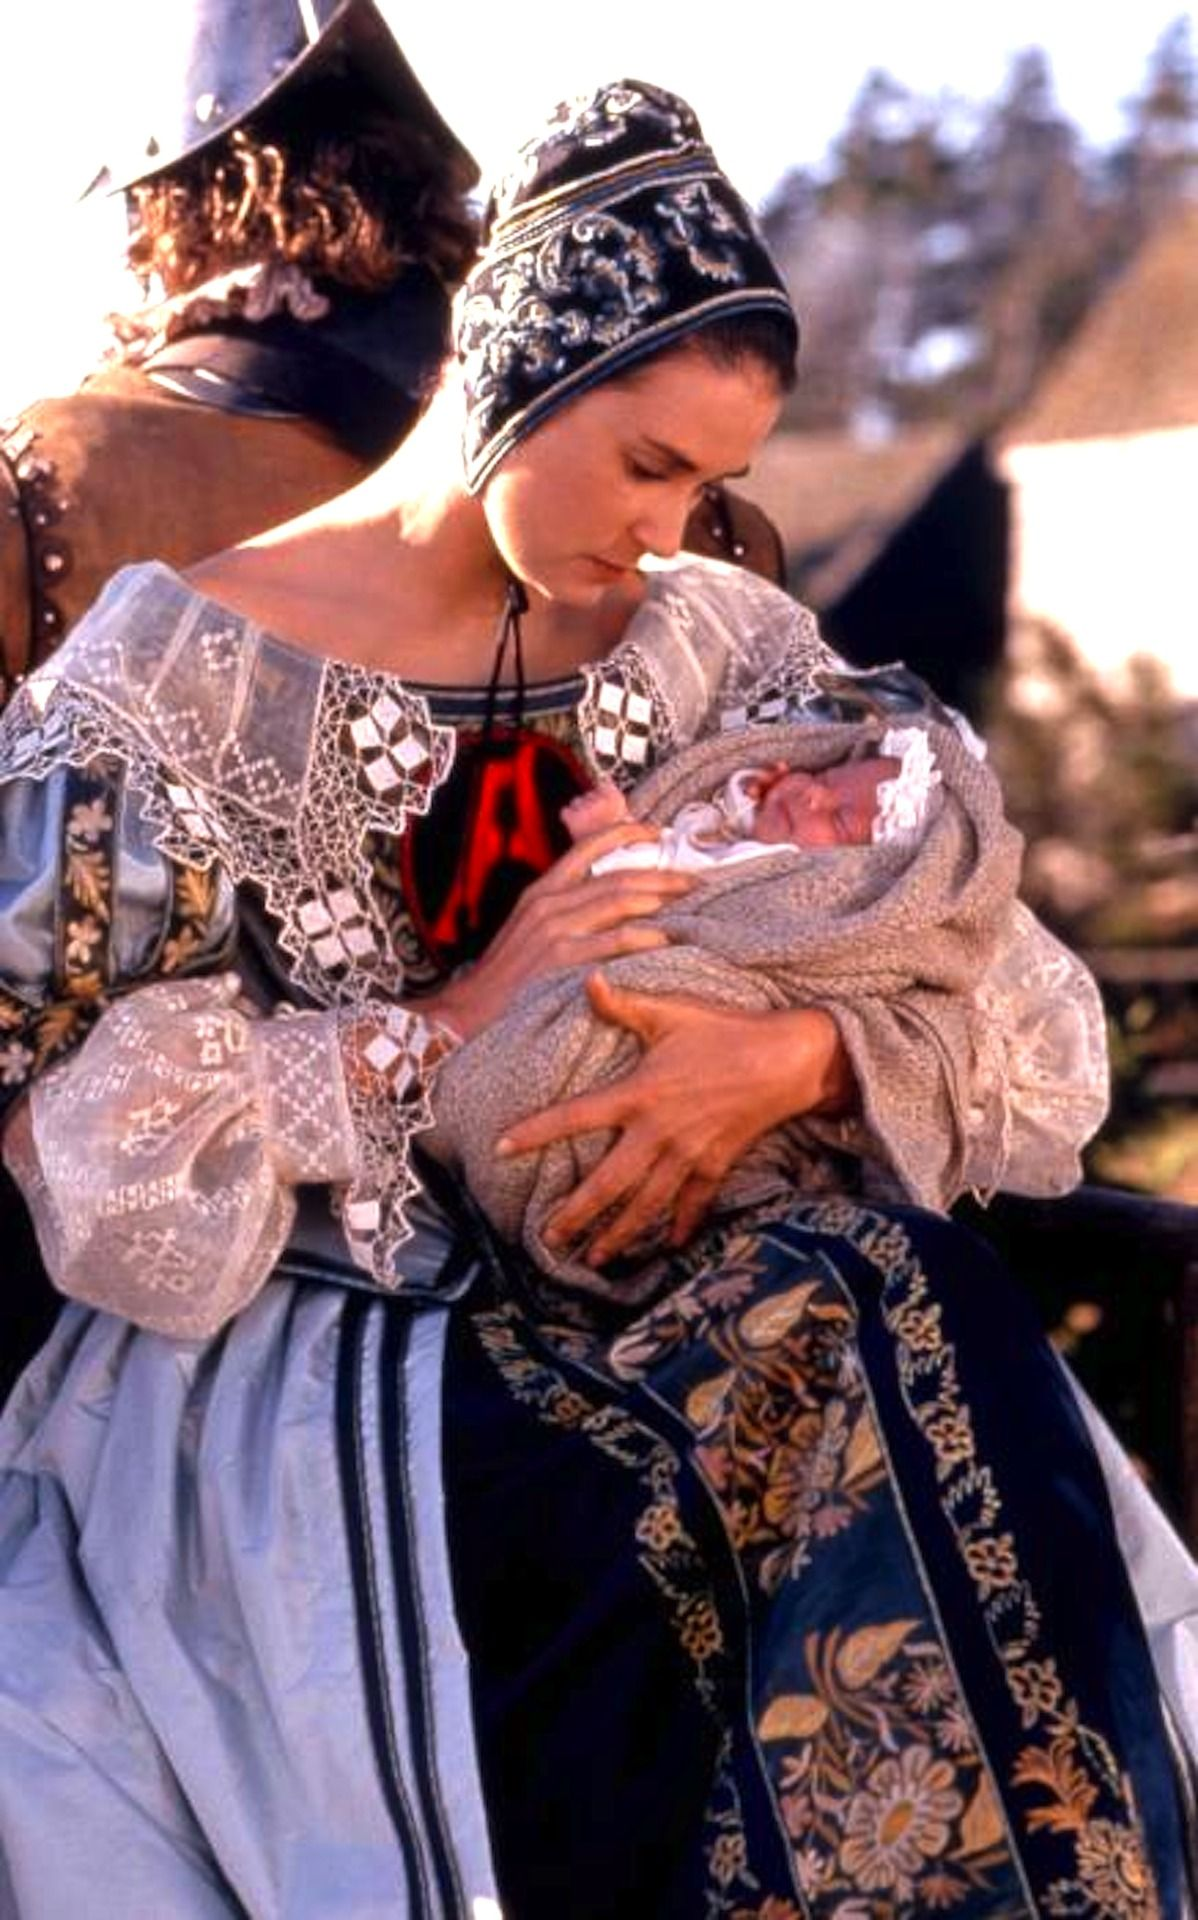 Mademoisellelapiquante Demi Moore As Hester Prynne In The